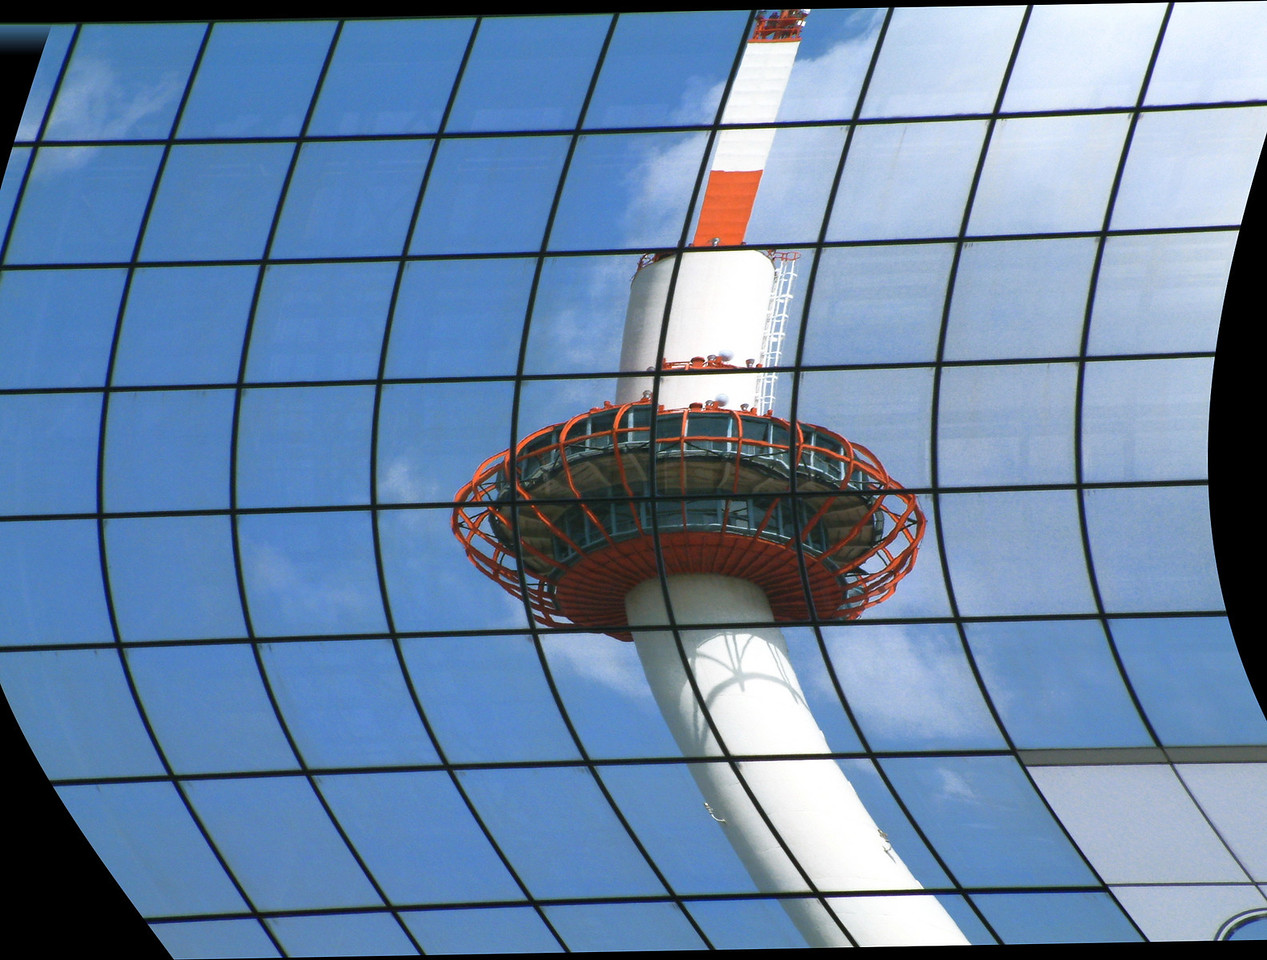 Kyoto Tower reflected in the glass of Kyoto Station.